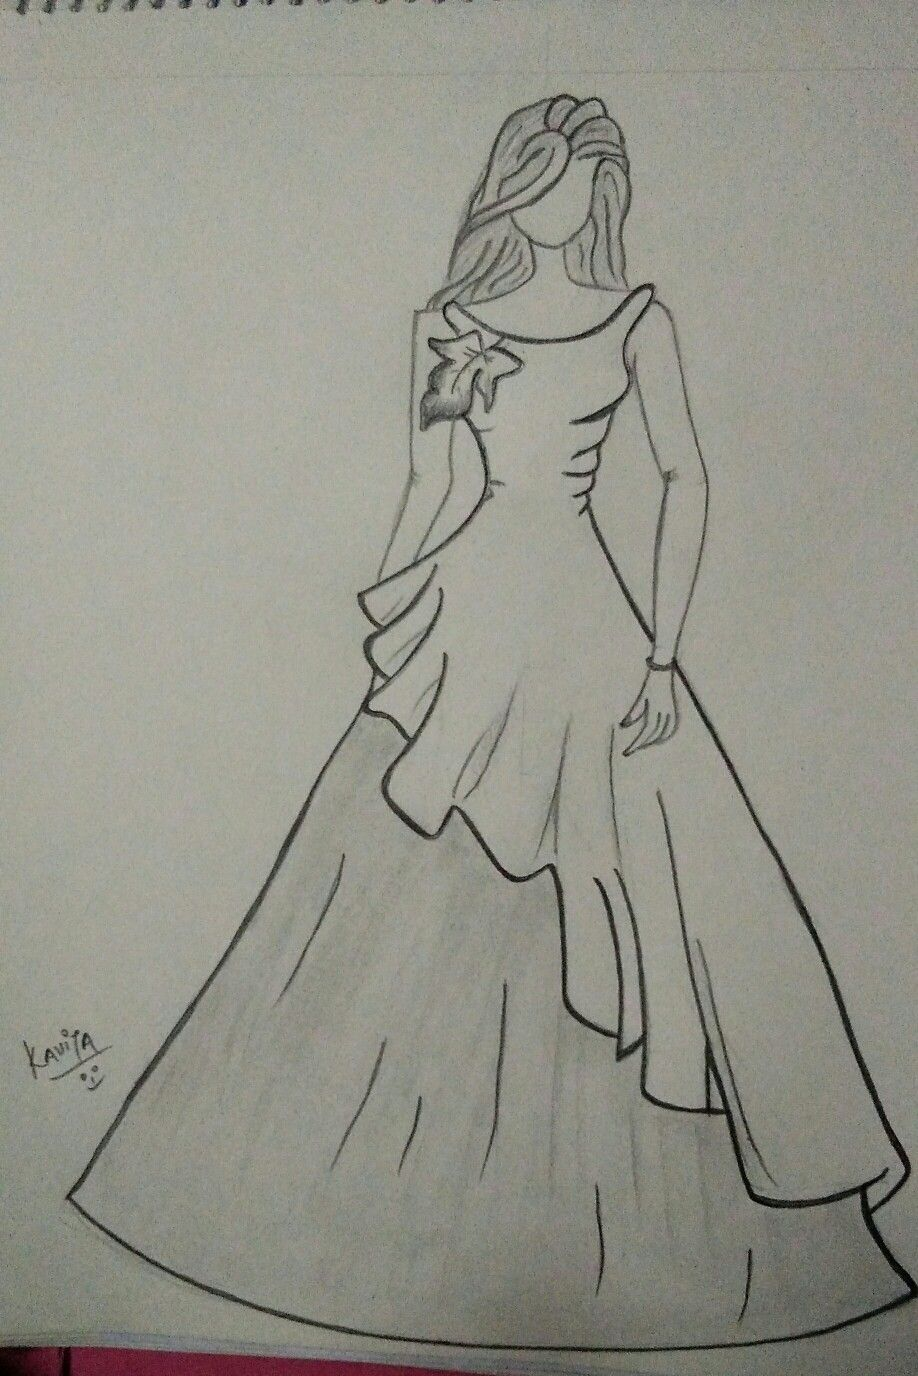 Pin By Jamuna Rani On Made By The Kkavita Anand Art Drawings Sketches Creative Pencil Art Drawings Art Drawings Sketches Simple